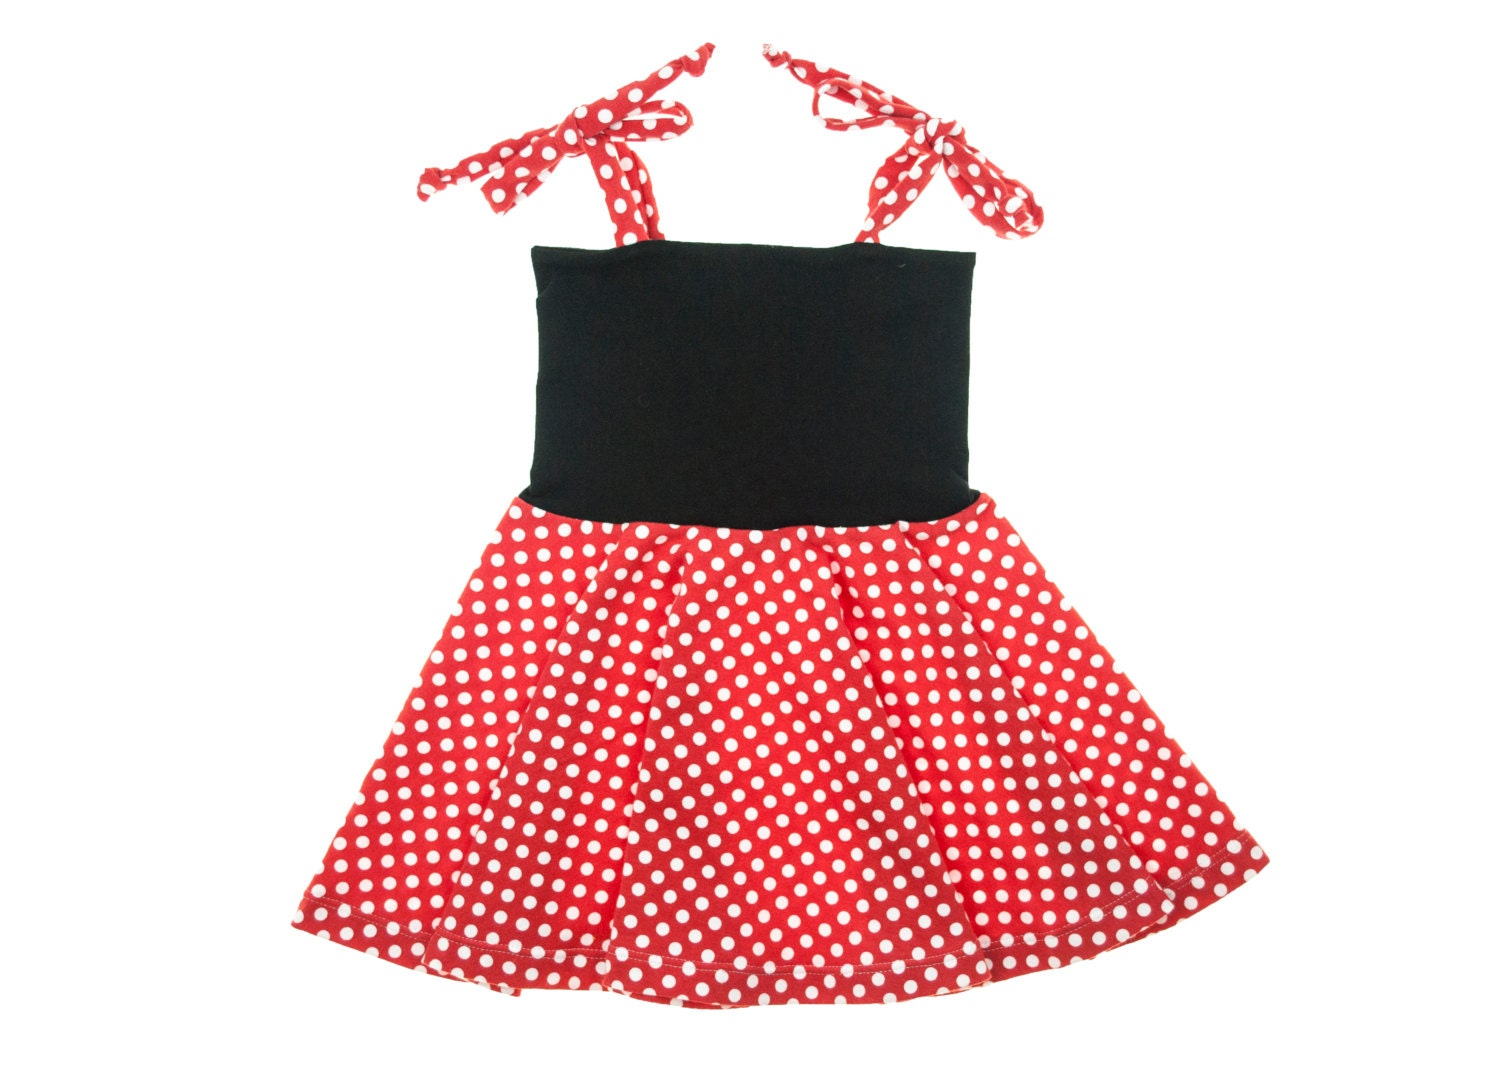 Months Gentle Girls Strappy Dress Age 12 Clothing, Shoes & Accessories Girls' Clothing (newborn-5t)